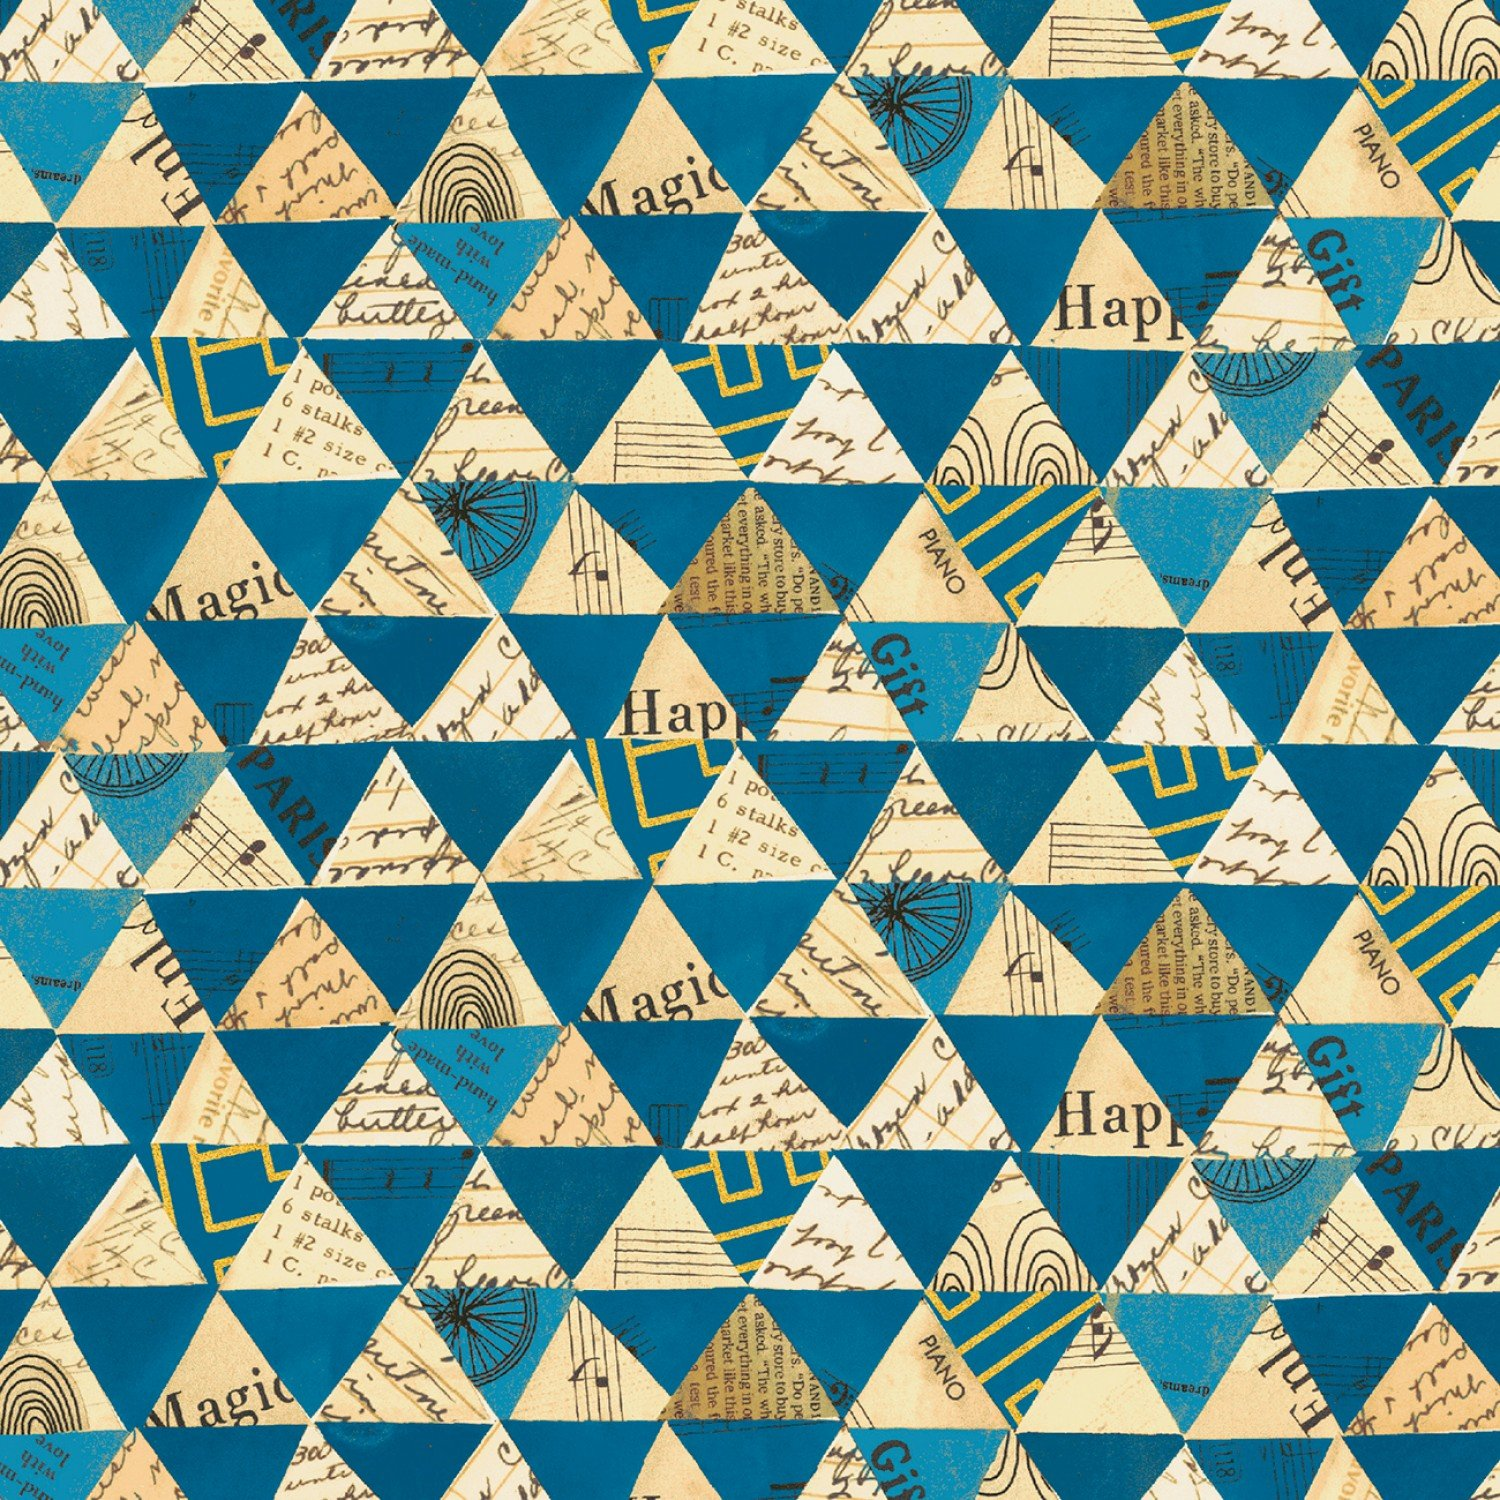 WF-Wish (Linen Cotton) 51743LC-3 Peacock - Collaged Triangles Linen